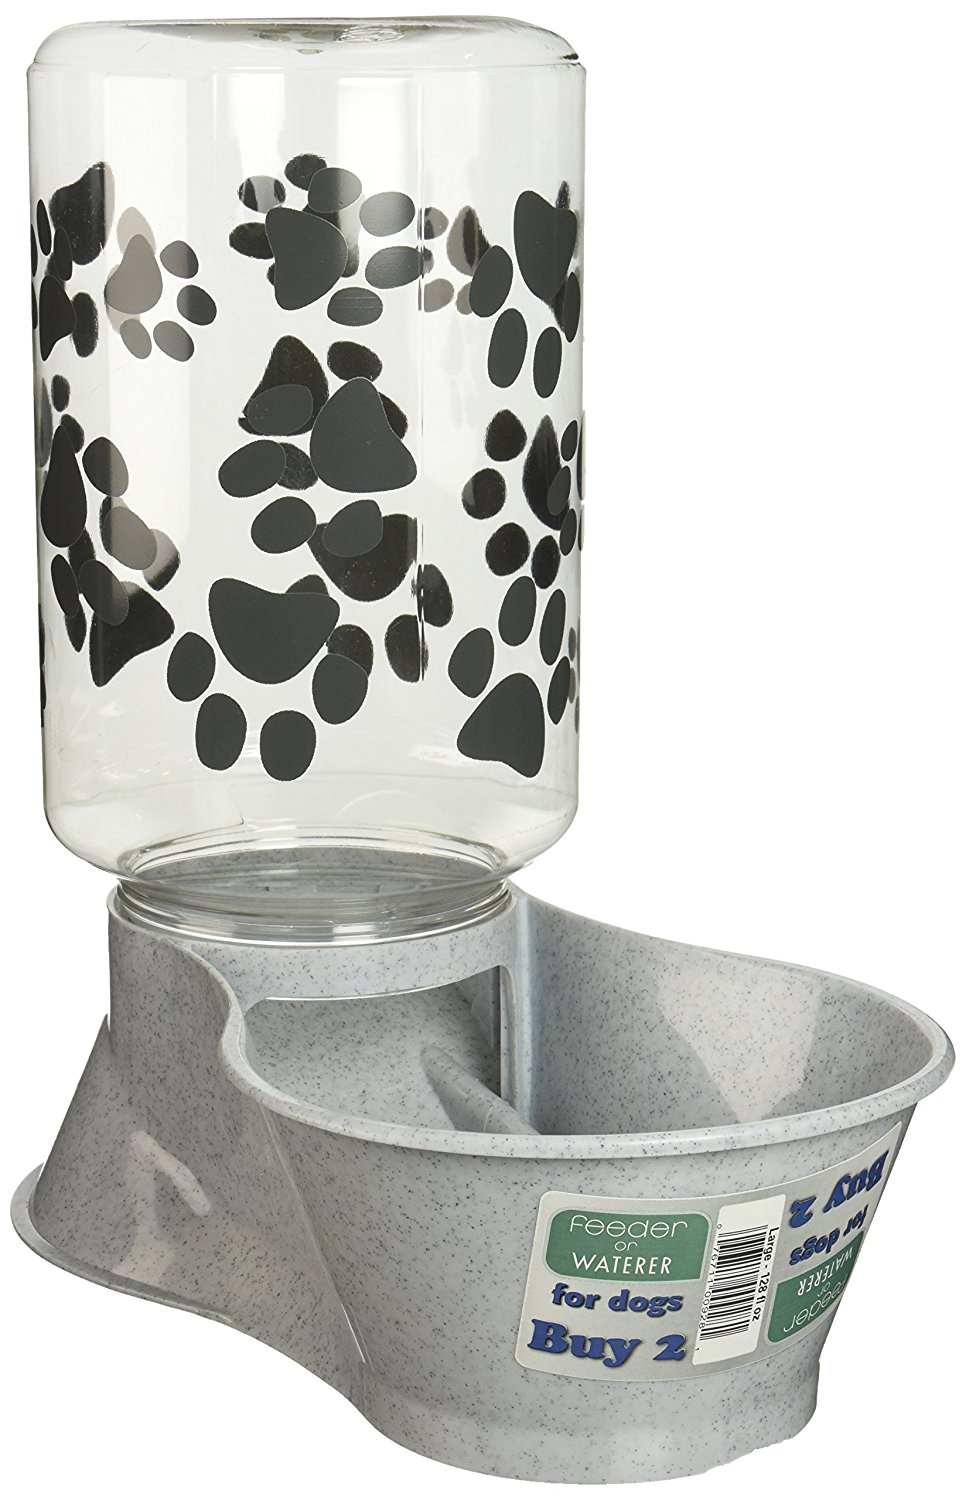 Lixit Animal Care Dog Feeder and Water Front